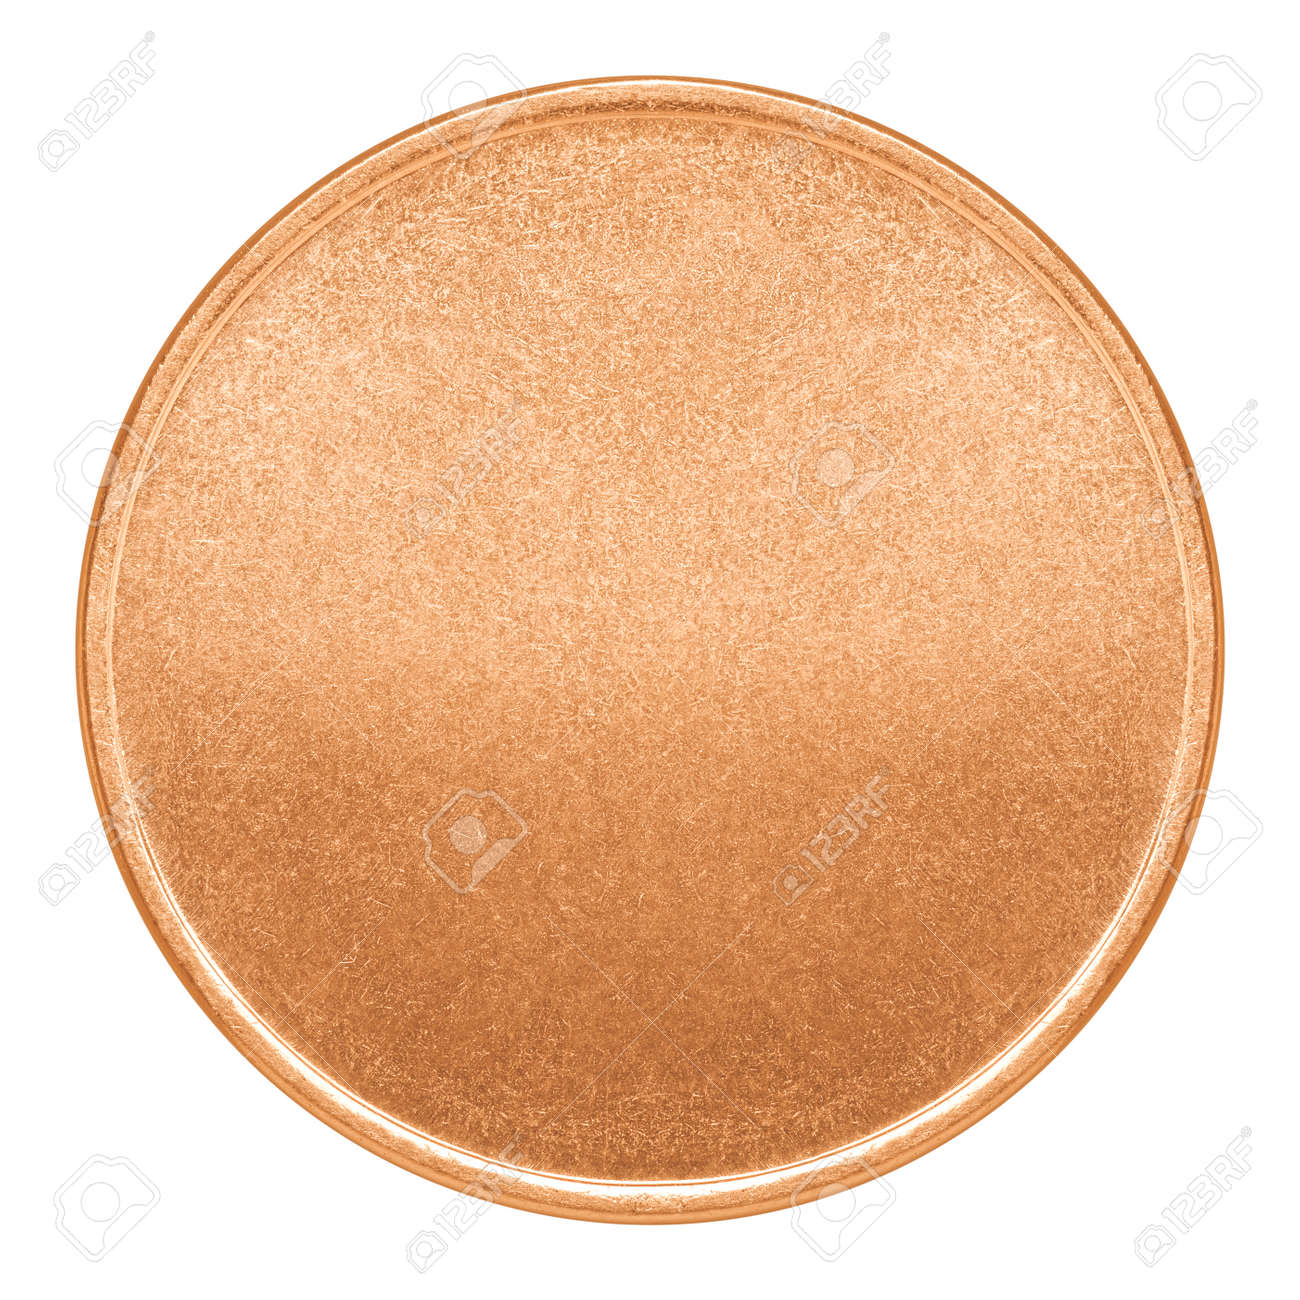 blank template for copper coin or medal with metal texture stock